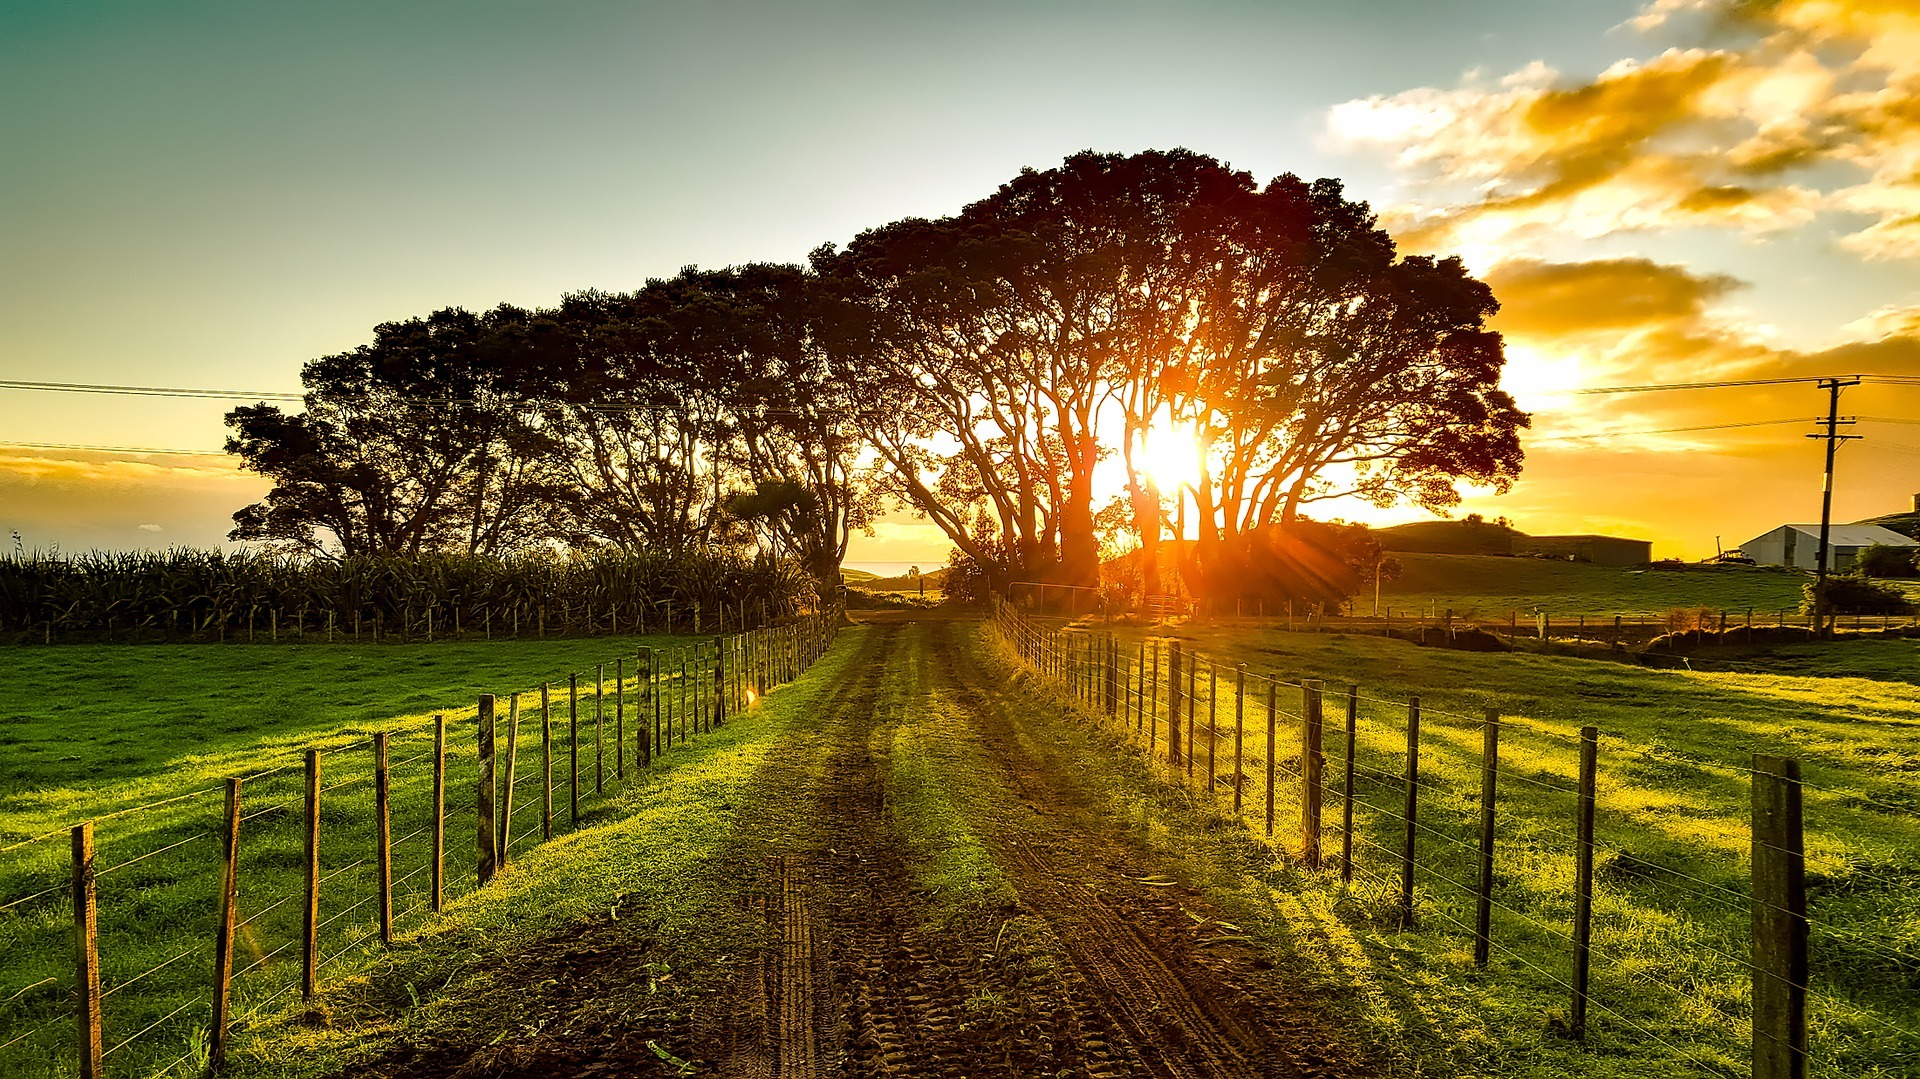 Dirt Road Between Fences and Beautiful Sunset - Farm Background Wallpaper Pictures